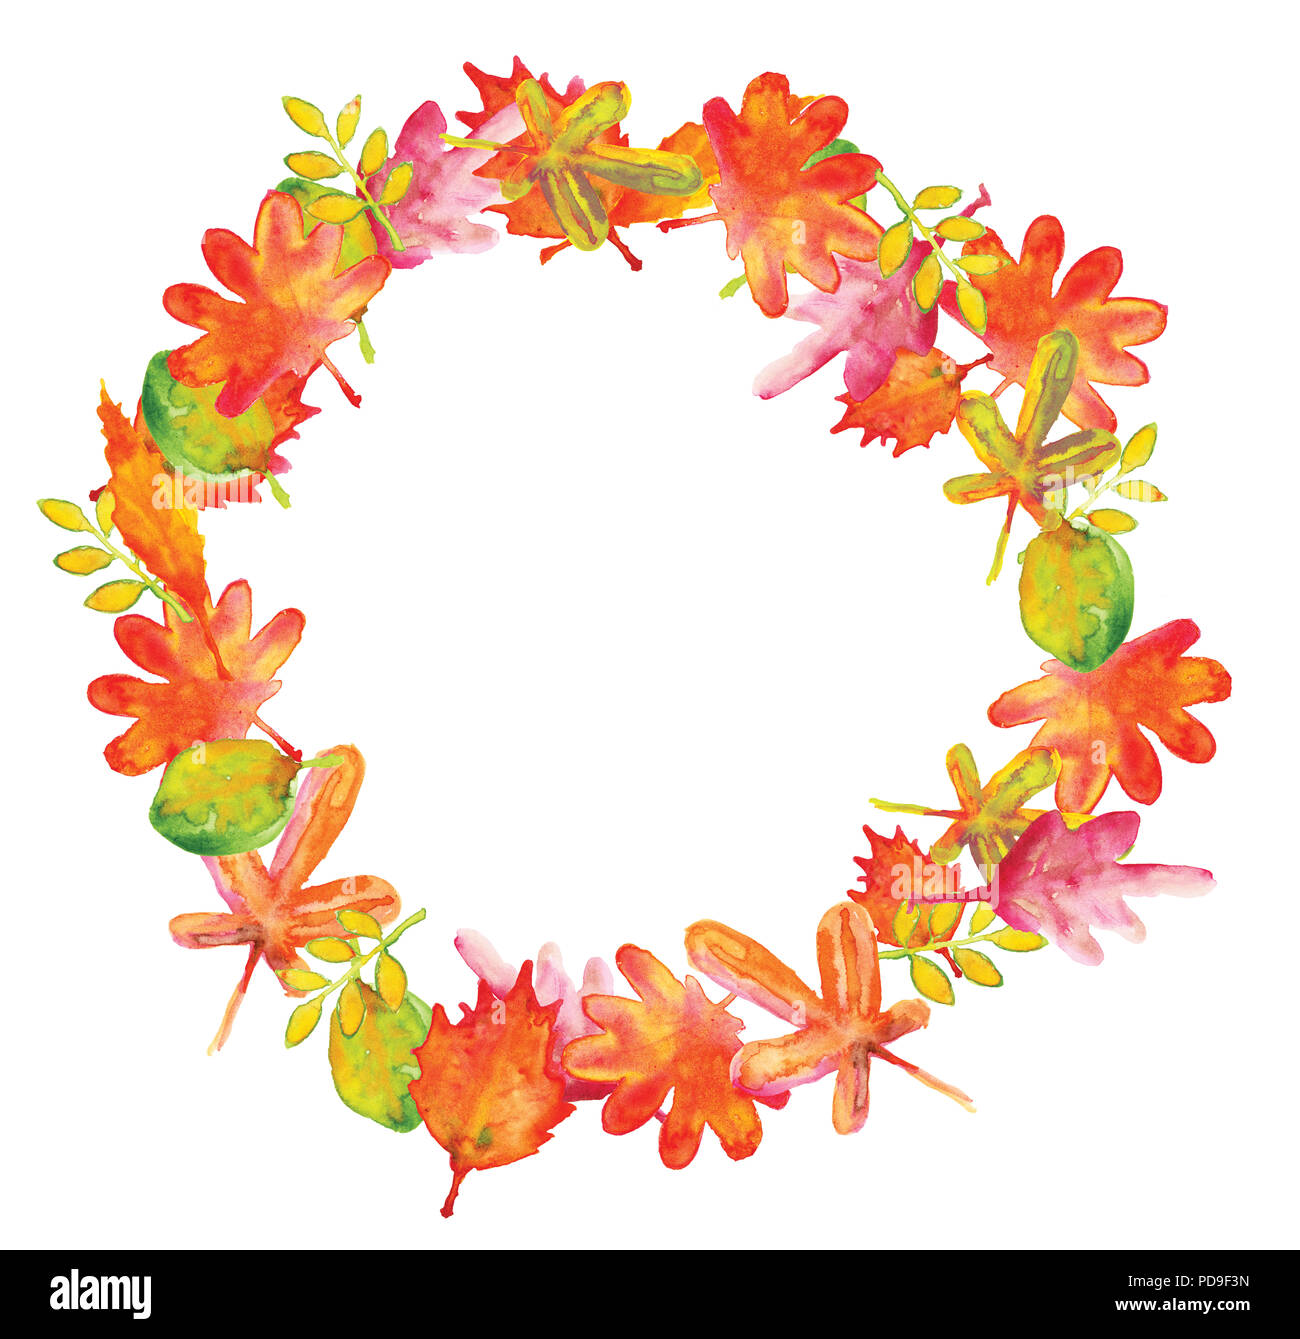 the watercolor illustration of fall leaves wreath frame in warm